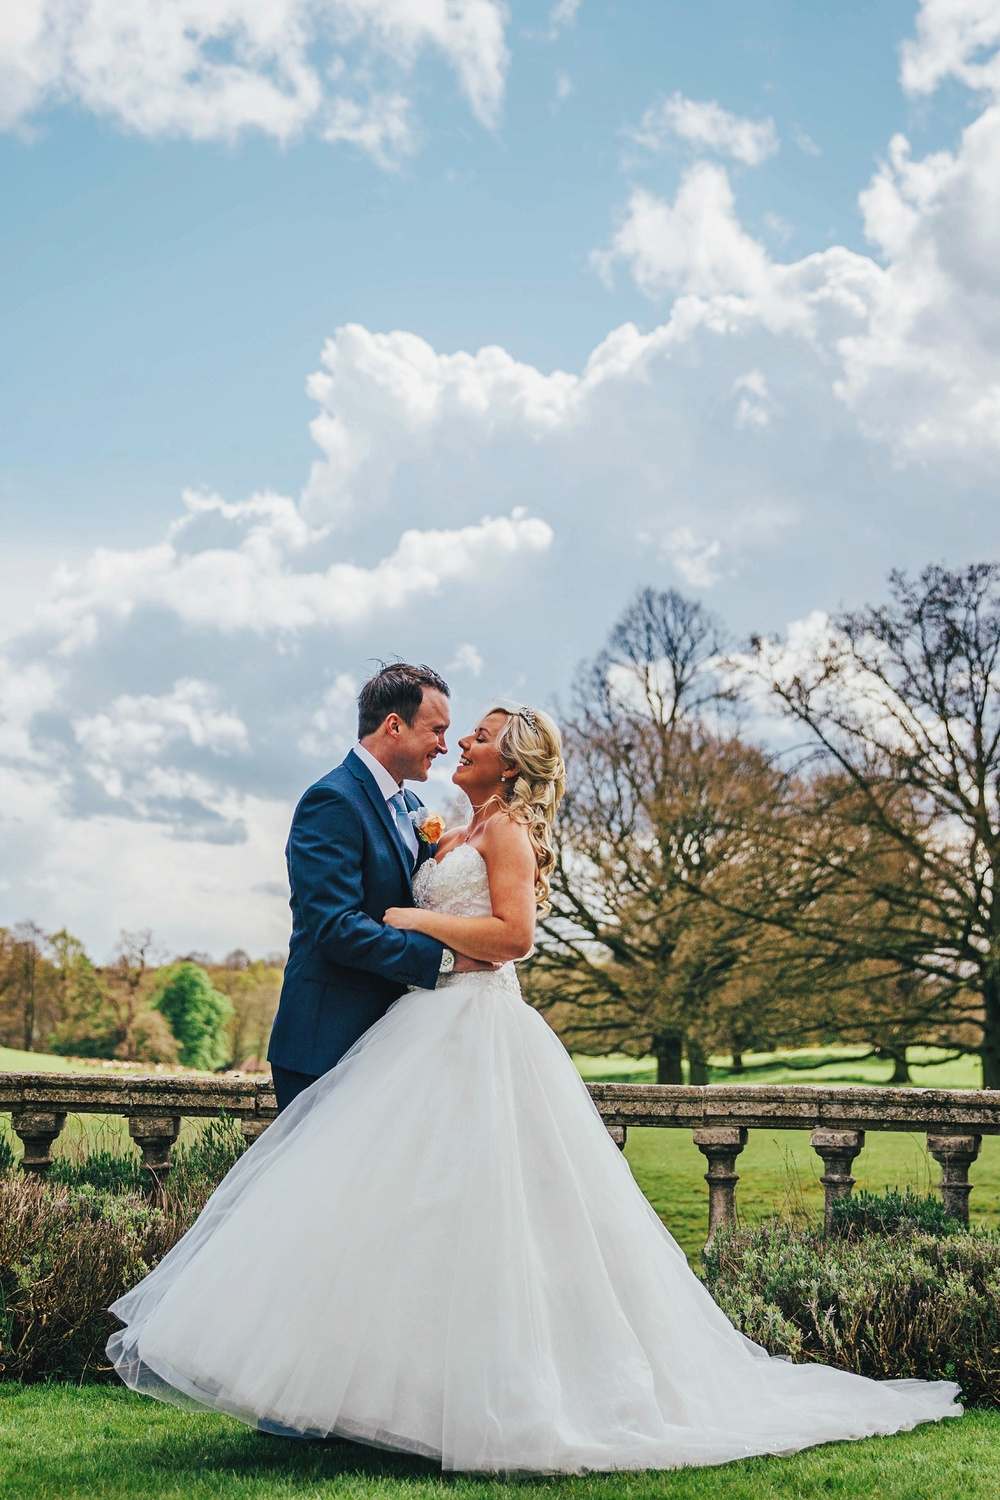 Spring Wedding Parklands Quendon Park Essense Designs Essex UK Documentary Wedding Photographer